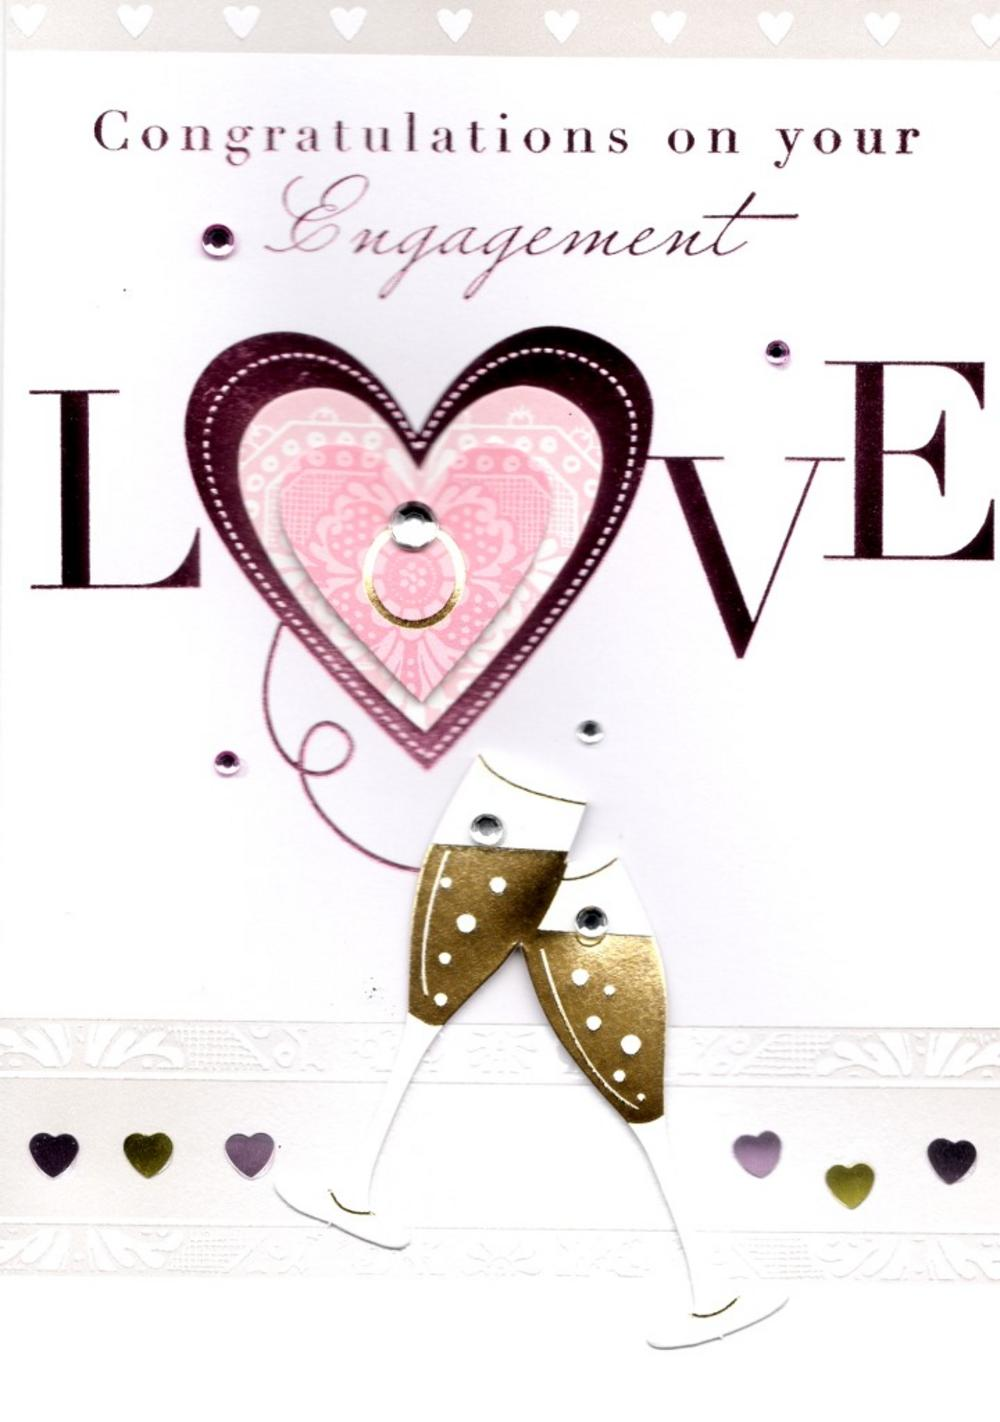 Engagement clipart engagement card. Congratulations on your greeting